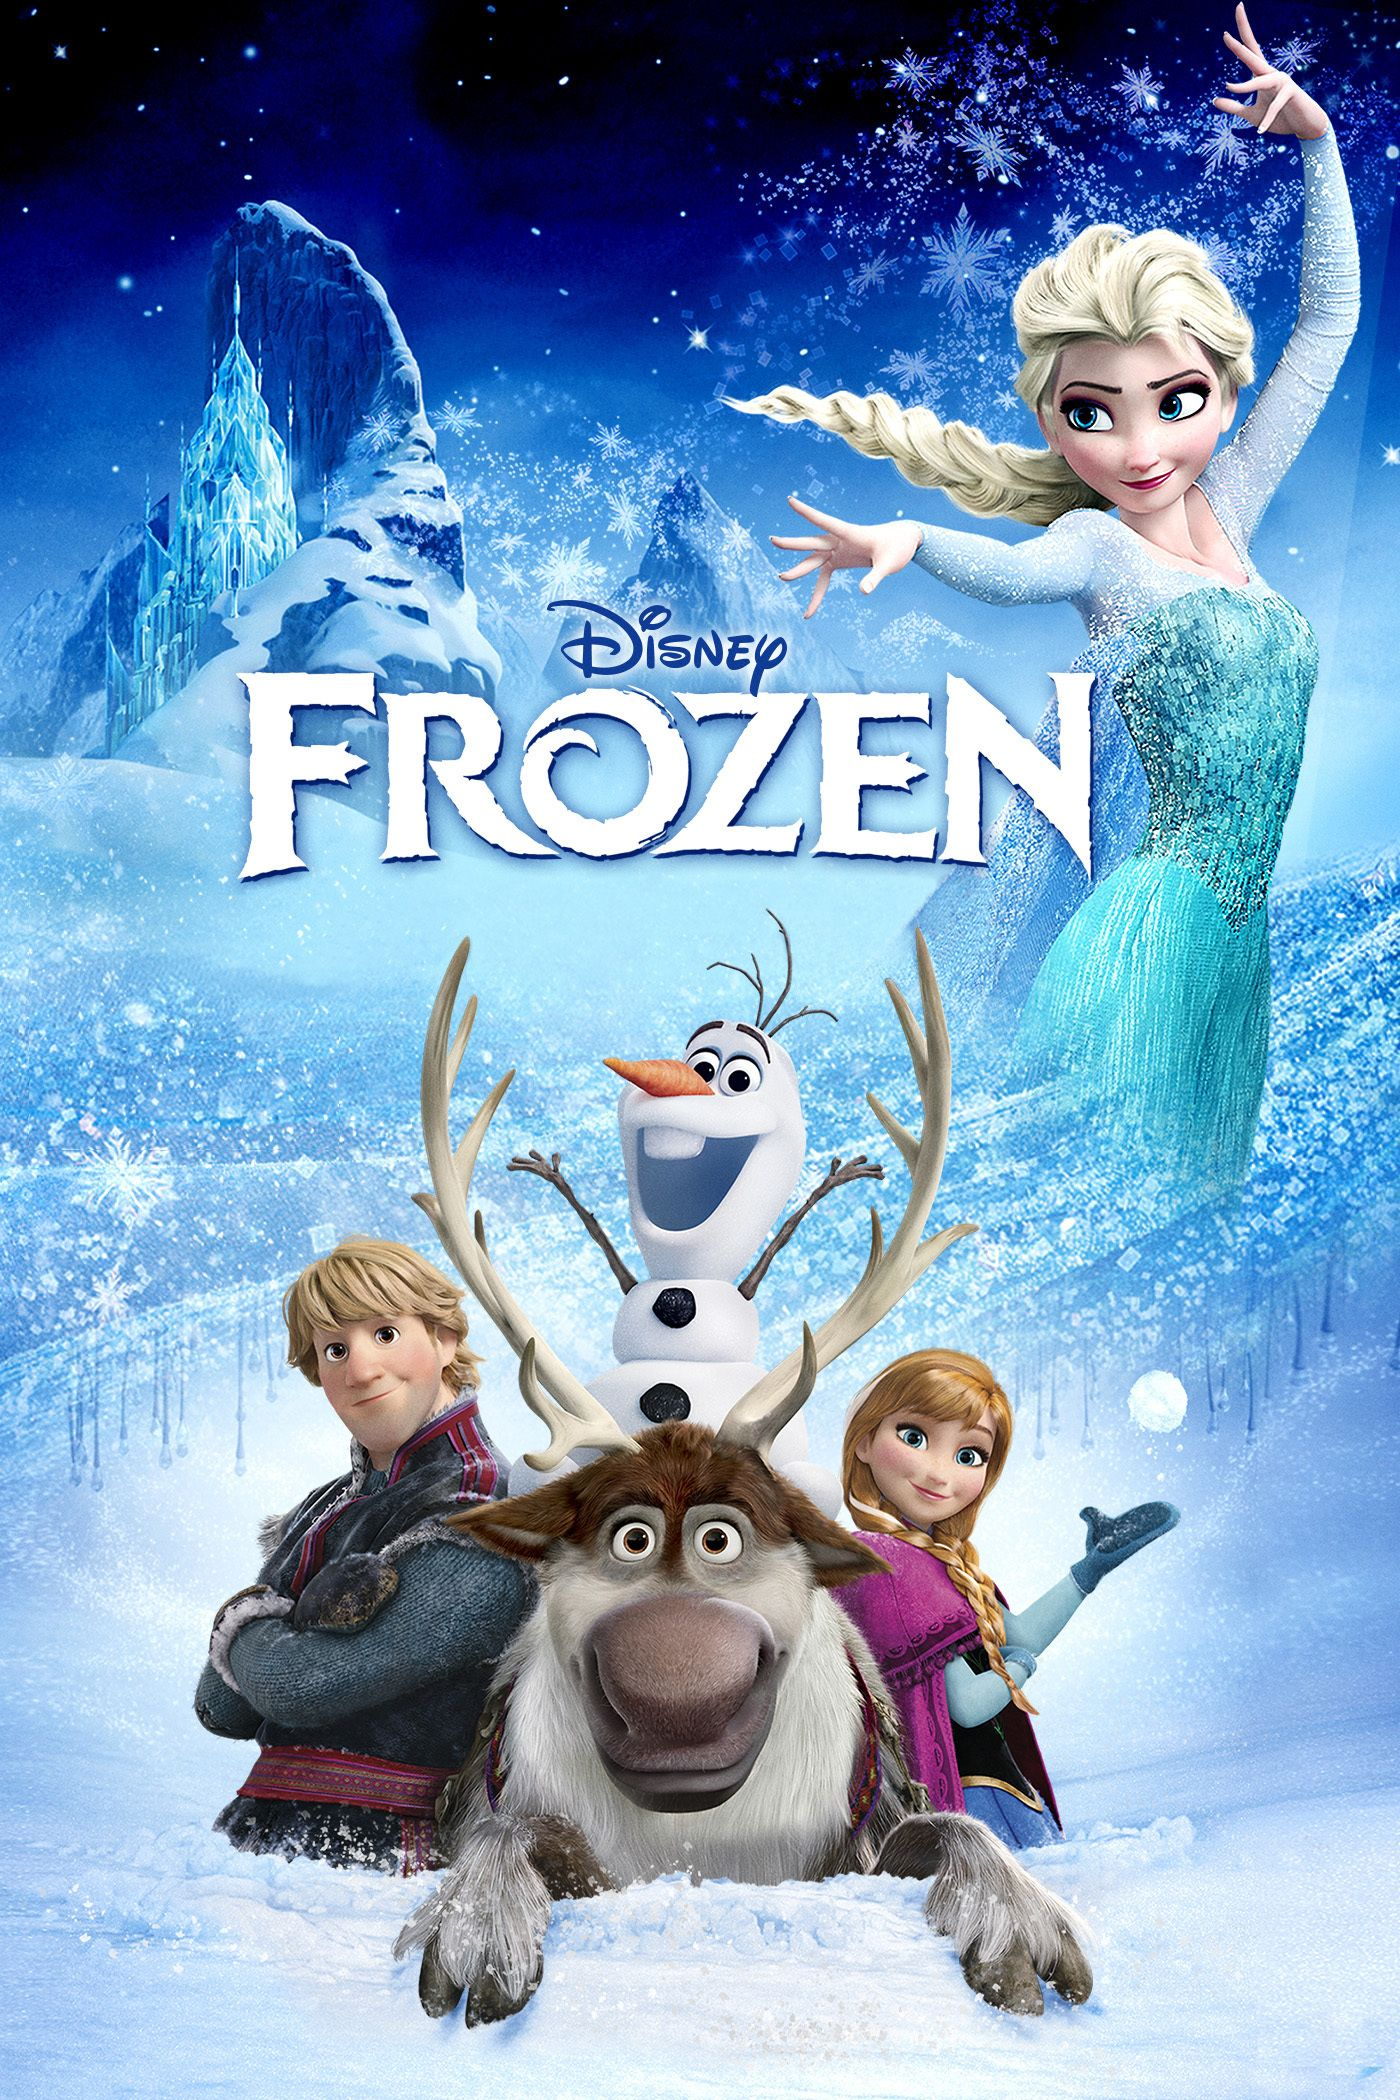 Disney frozen movie bad